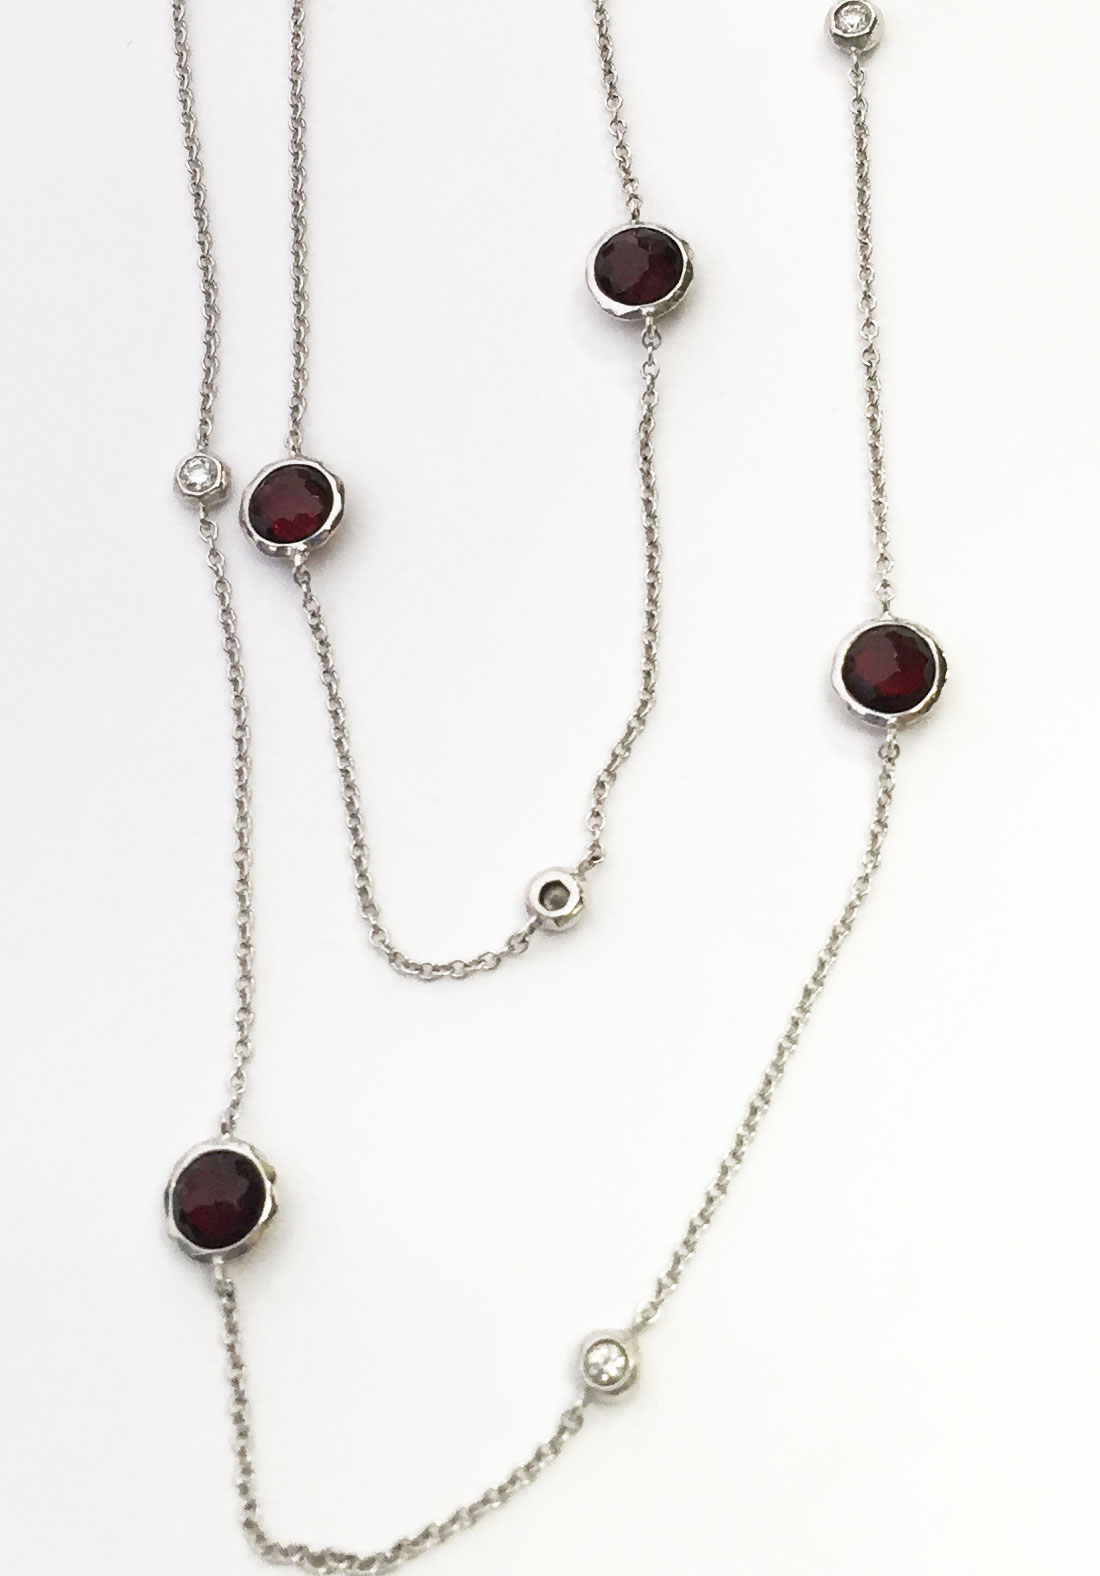 Necklace by Ippolita